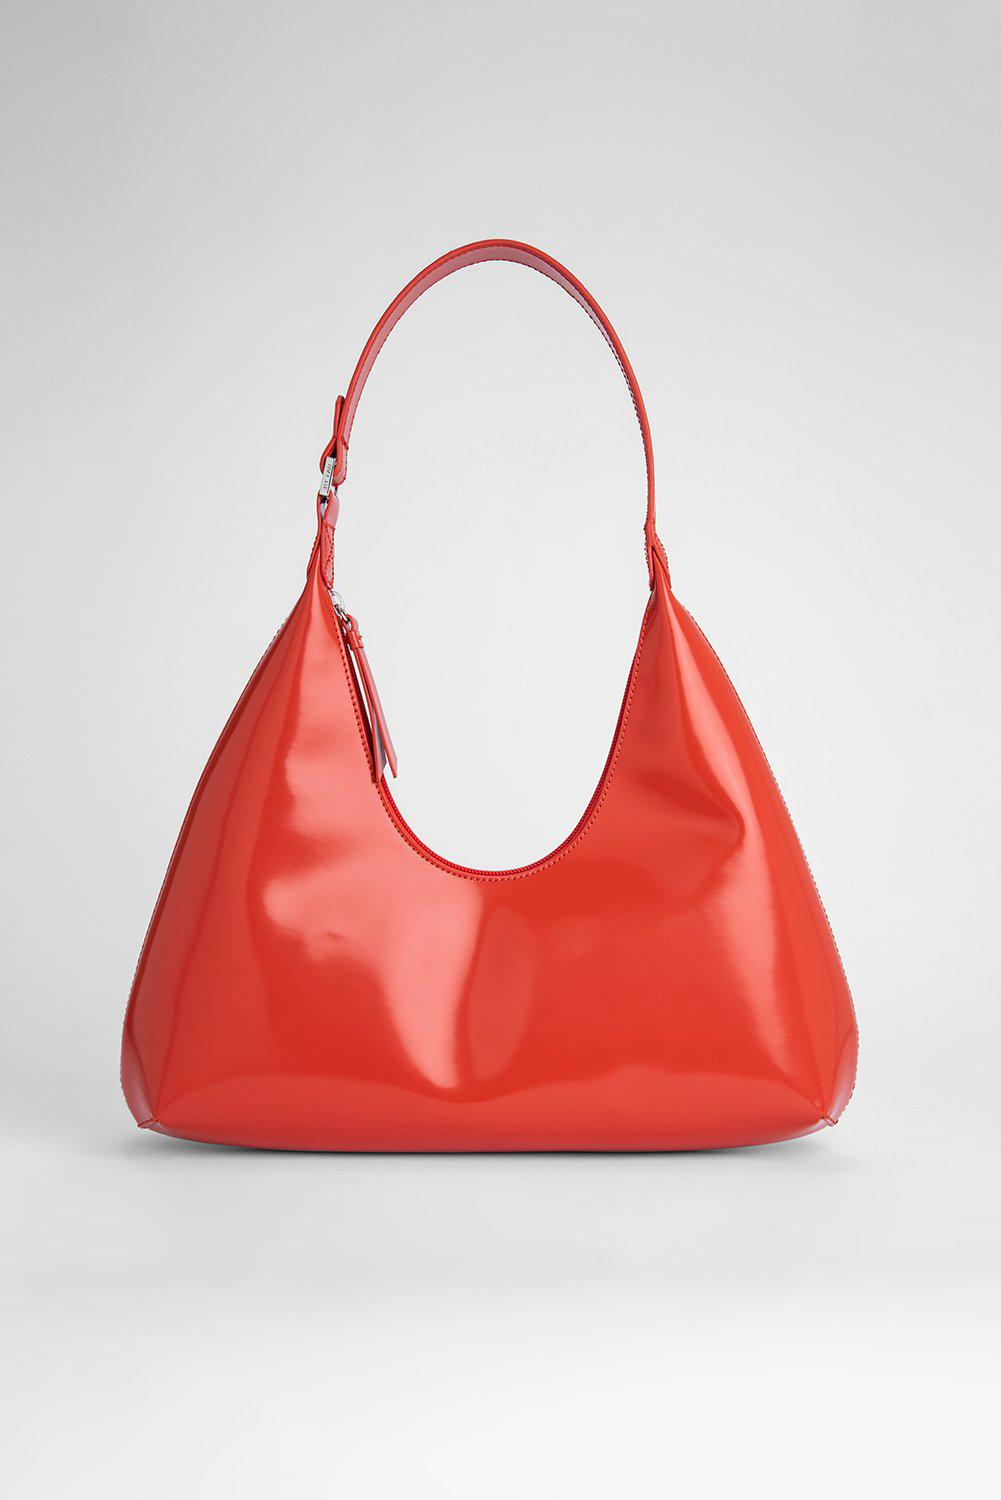 Amber Scarlet Semi Patent Leather